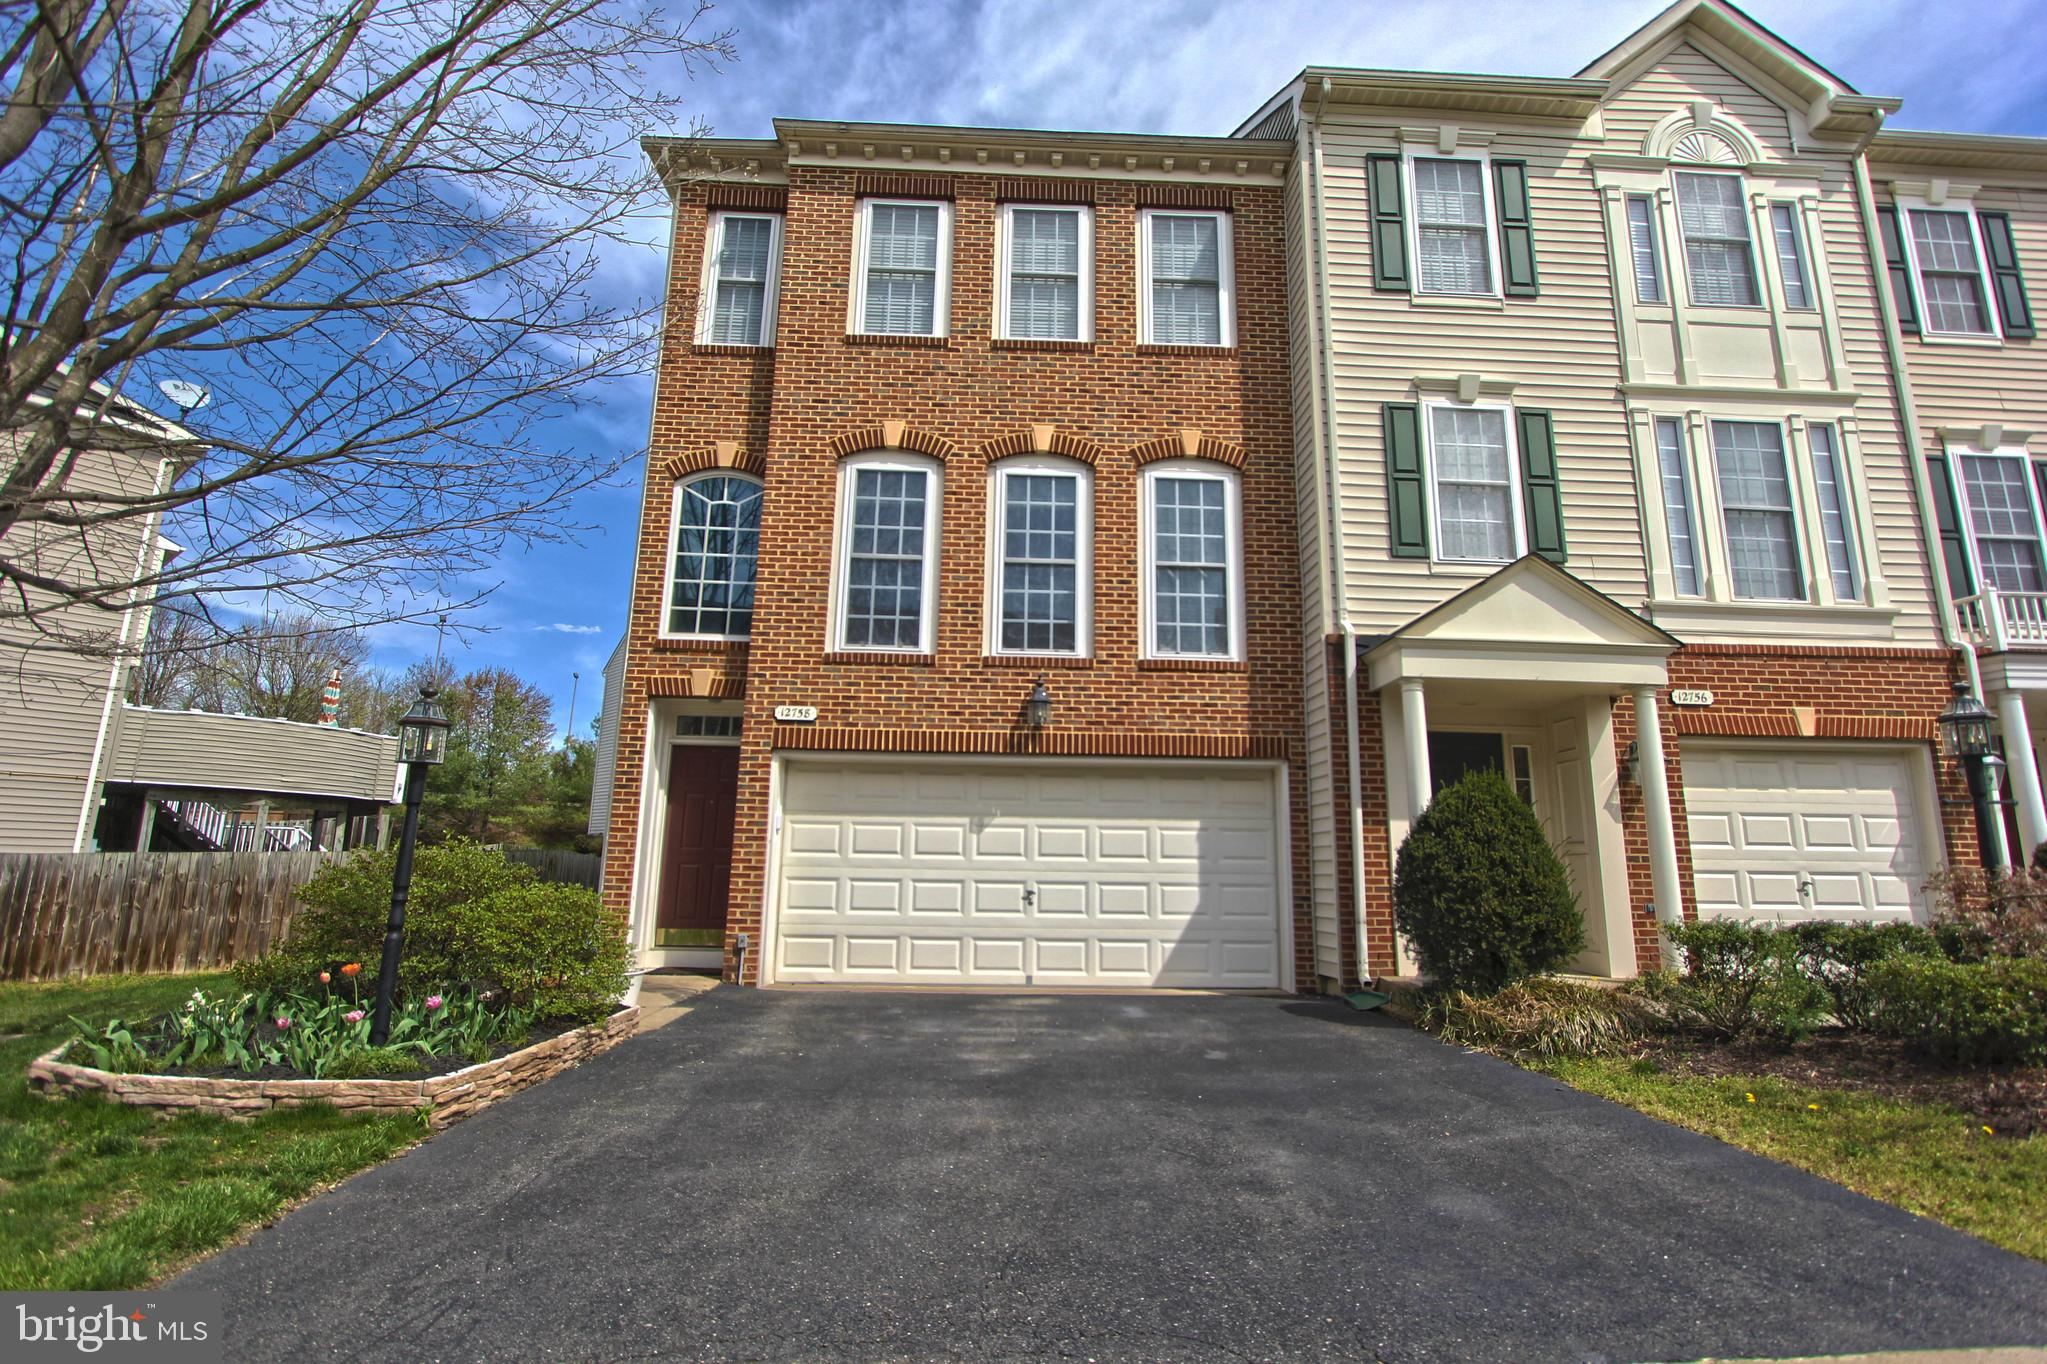 Beautifully upgraded 3 level end unit townhome with a 2 car garage in desirable Buckley's Reserve in Fairfax. Special features include: 3 bedrooms, 2 full baths and 2 half baths. Gourmet Kitchen with maple cabinets, central island, stainless steel appliances, double wall oven & gas cooktop, microwave. Deck off the kitchen, recessed lights, plantation shutters, hardwood floors. Fully Finished walk-out Level Basement with bathroom. Excellent location near Fair Oaks mall, Fairfax Corner & Wegmans, shopping & restaurants, Rt. 29, 50, Ffx Co Pkwy & I-6